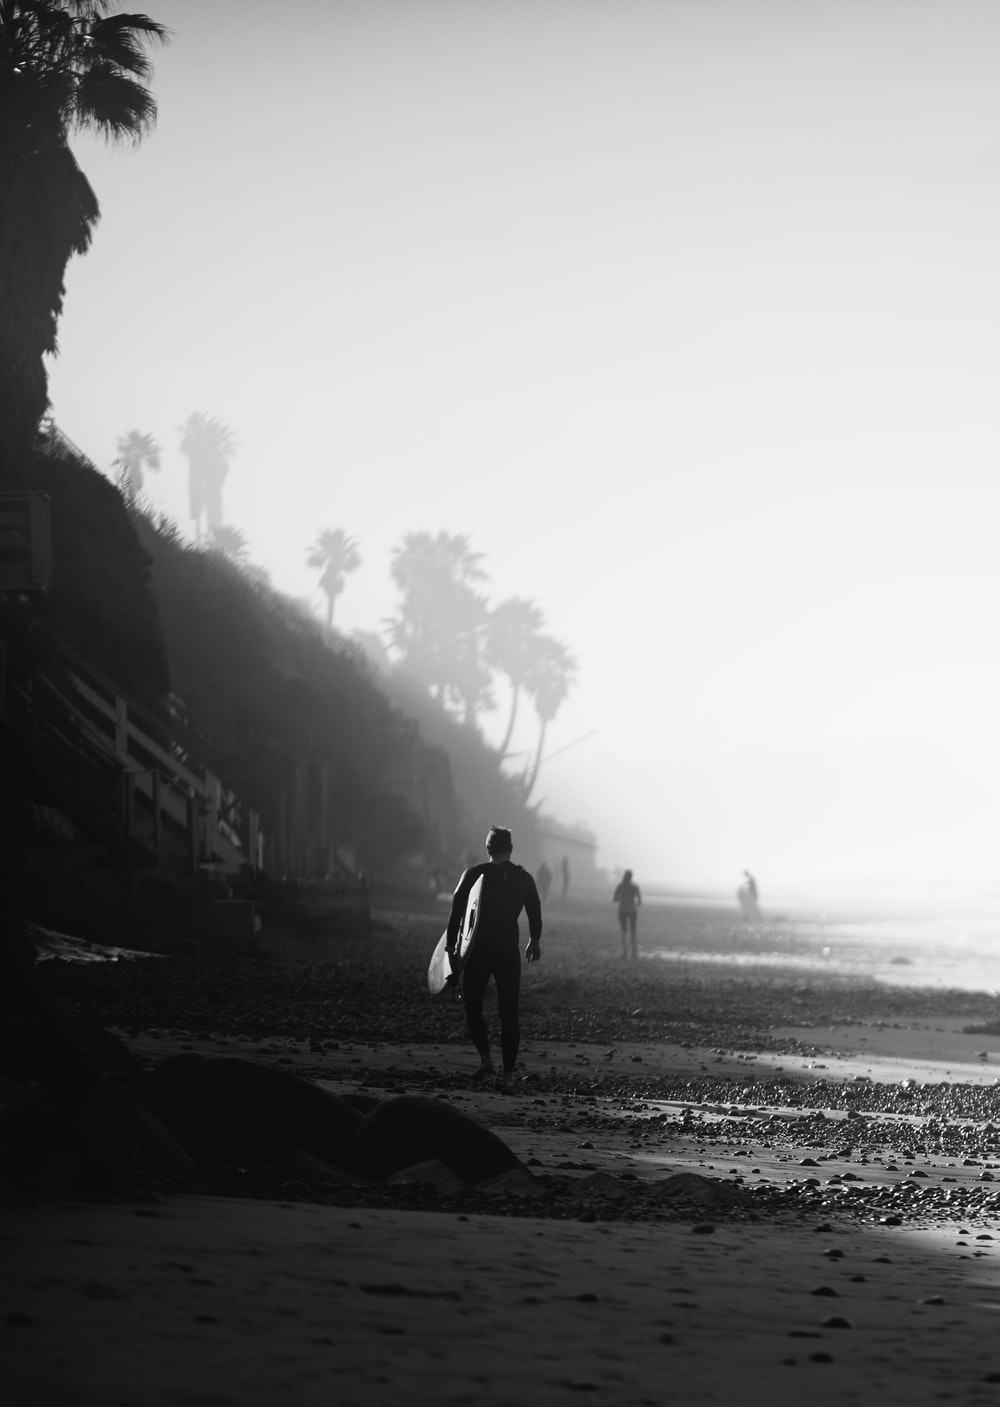 silhouette of person holding surfboard on shoreline